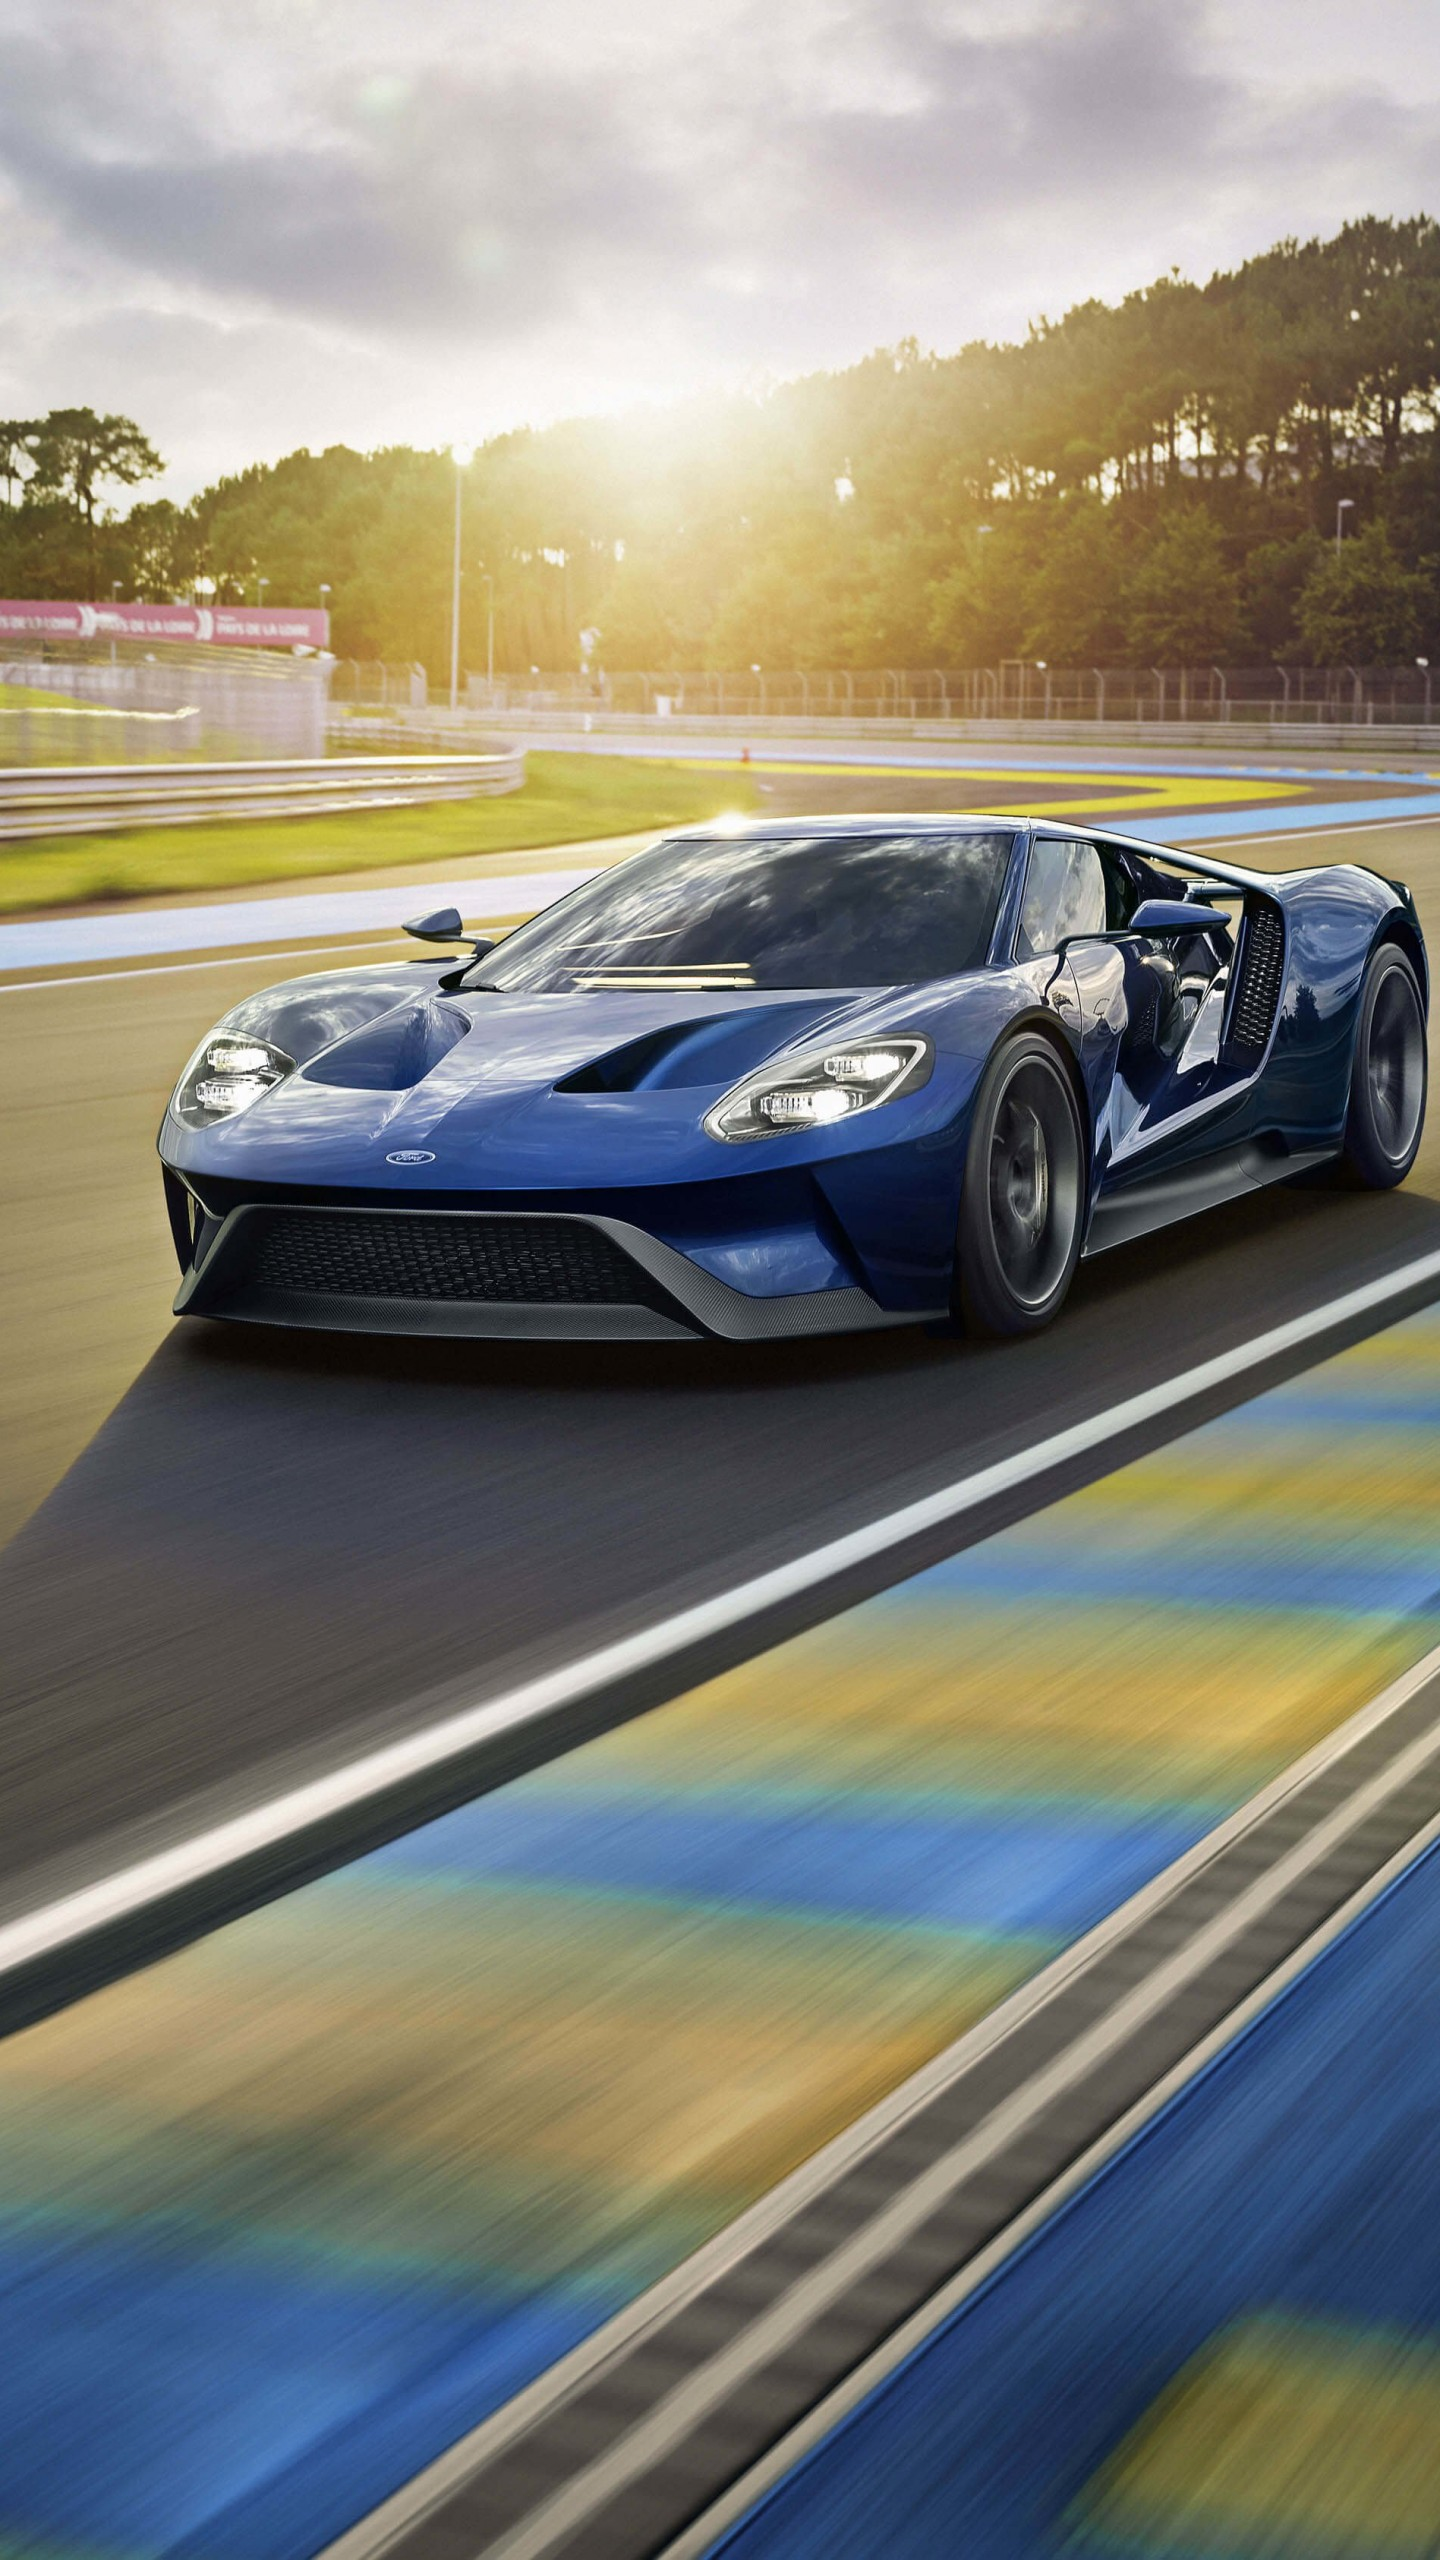 Ford GT Supercar Wallpaper for LG G3